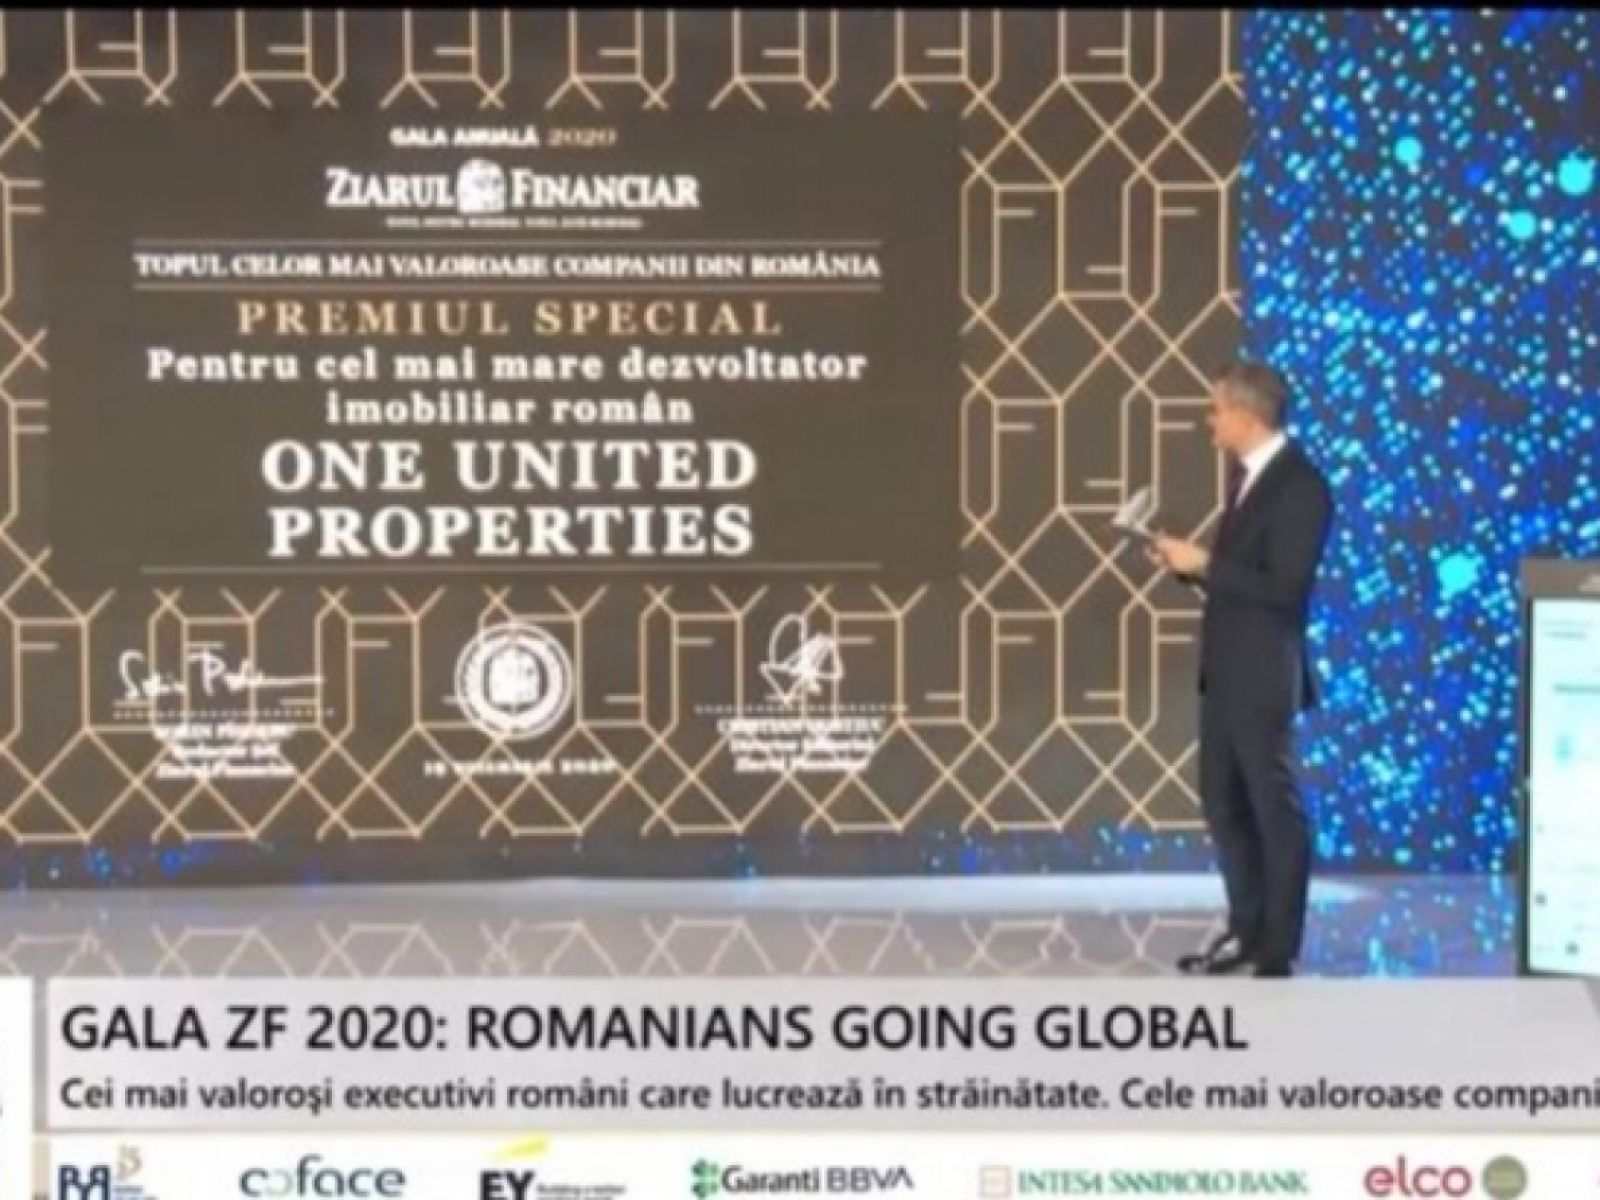 One United Properties awarded at ZF Gala – the leading real estate developer in Romania